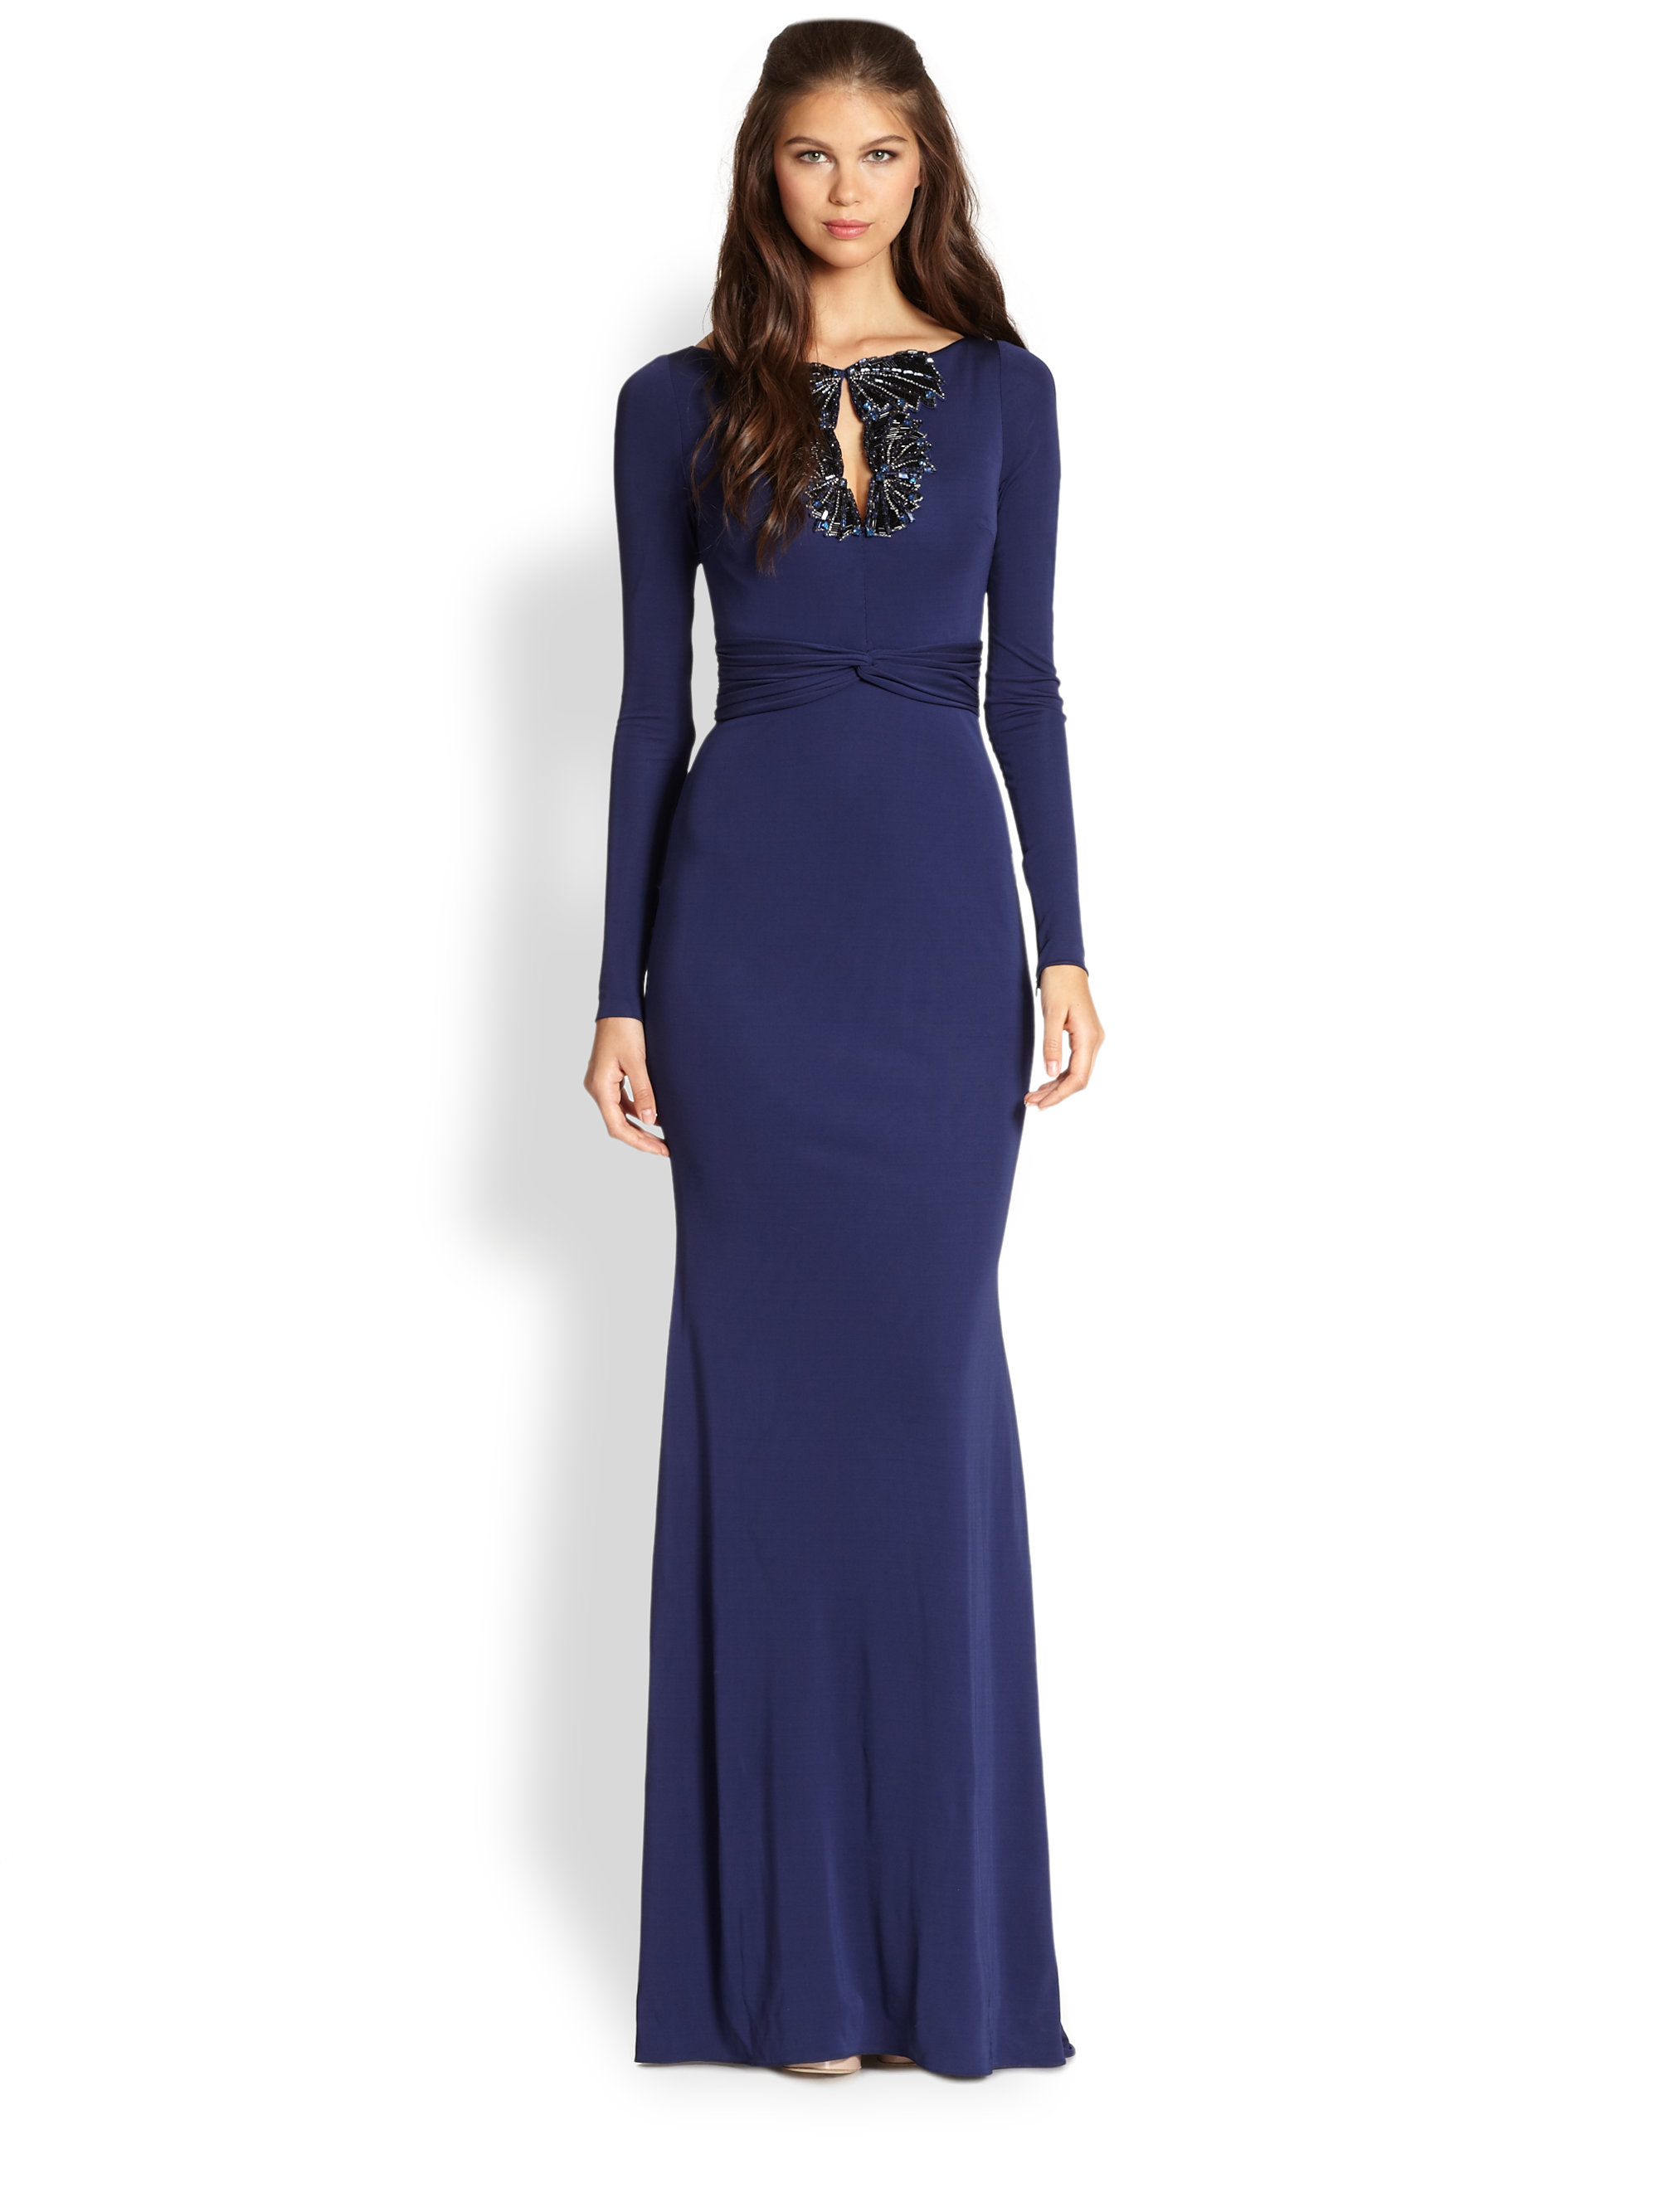 Badgley mischka beaded keyhole gown in blue sapphire lyst for Badgley mischka store nyc